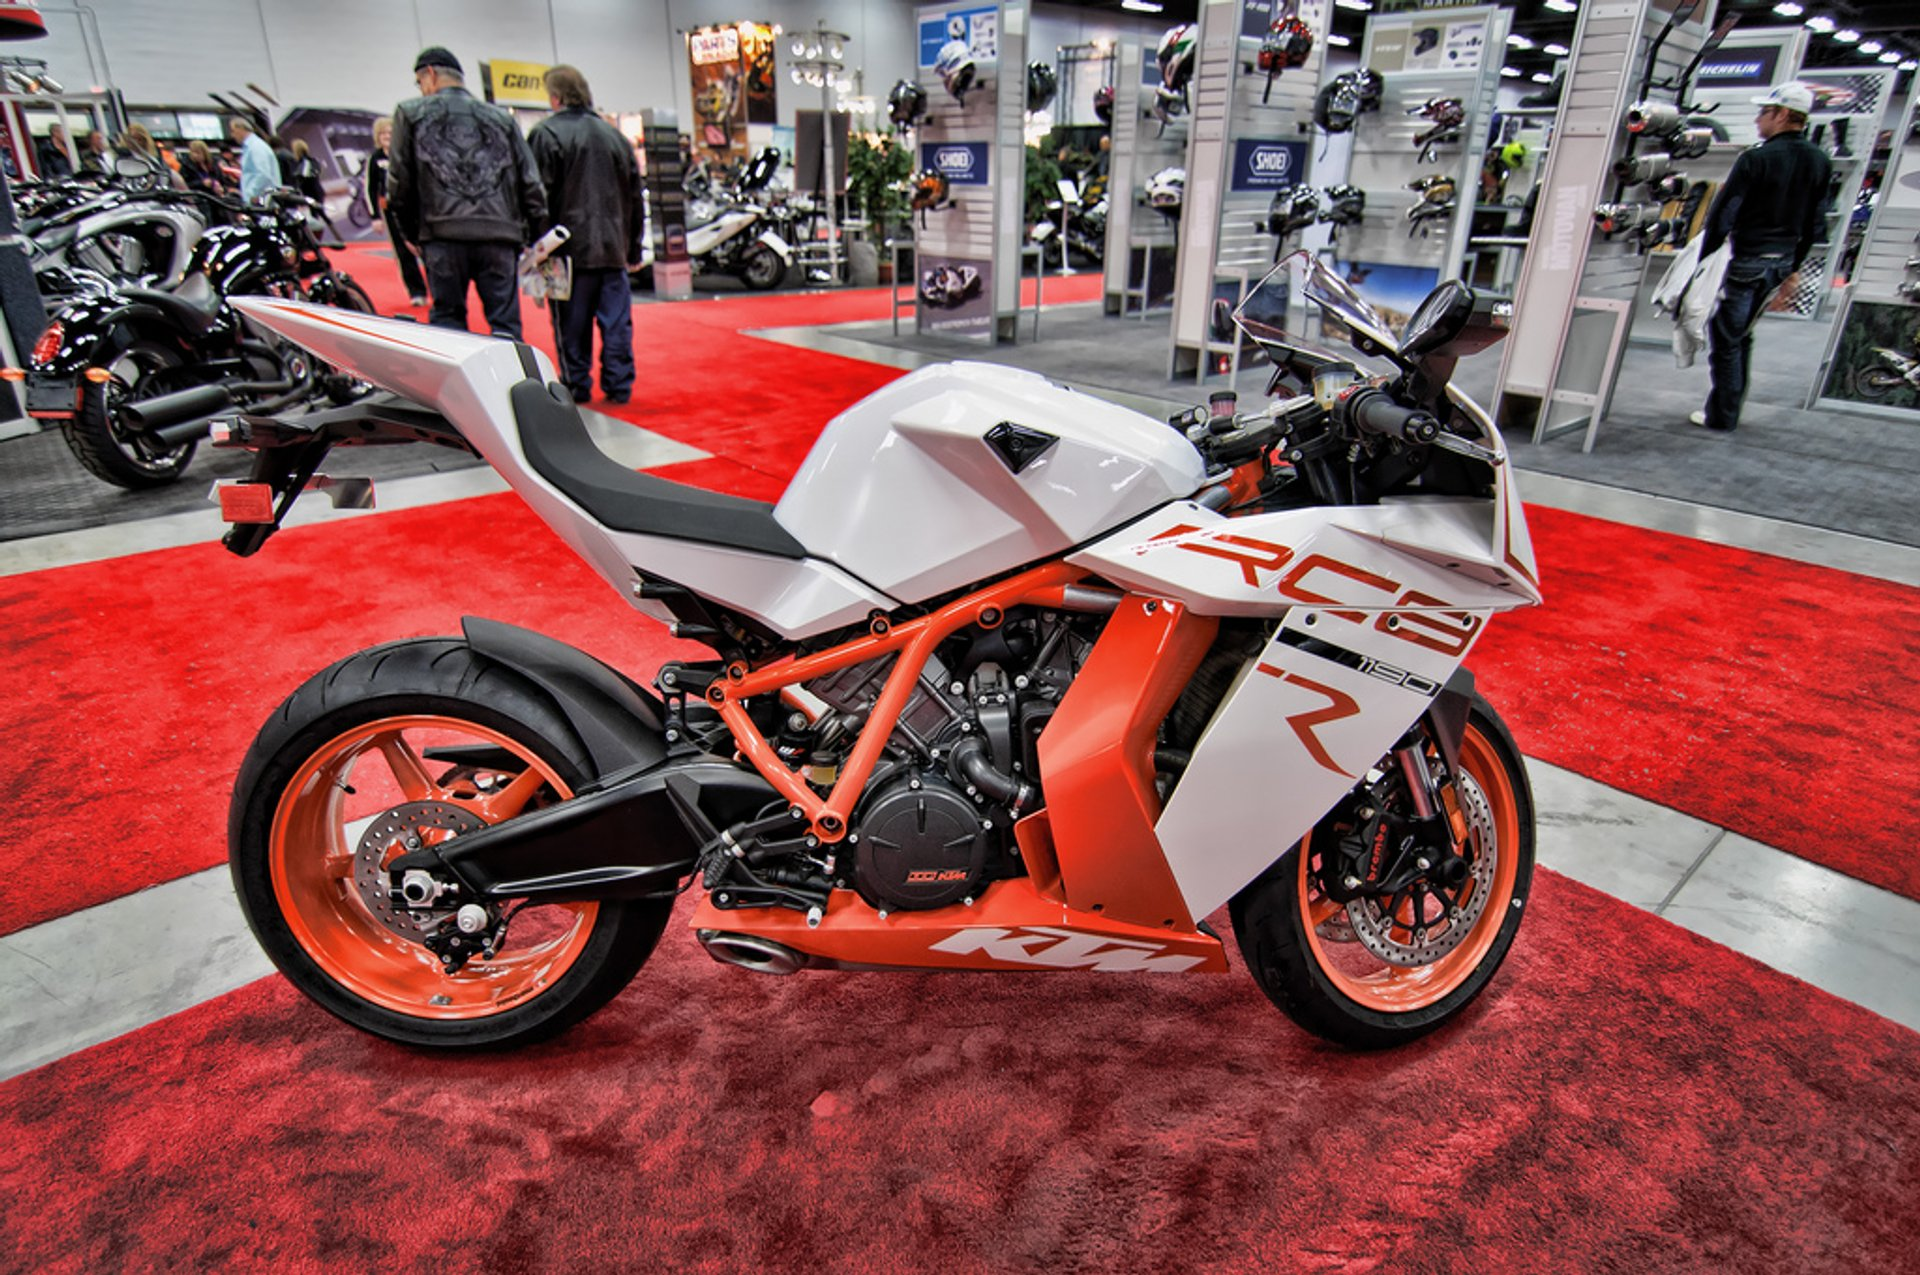 Best time for Edmonton Motorcycle Show in Edmonton 2020